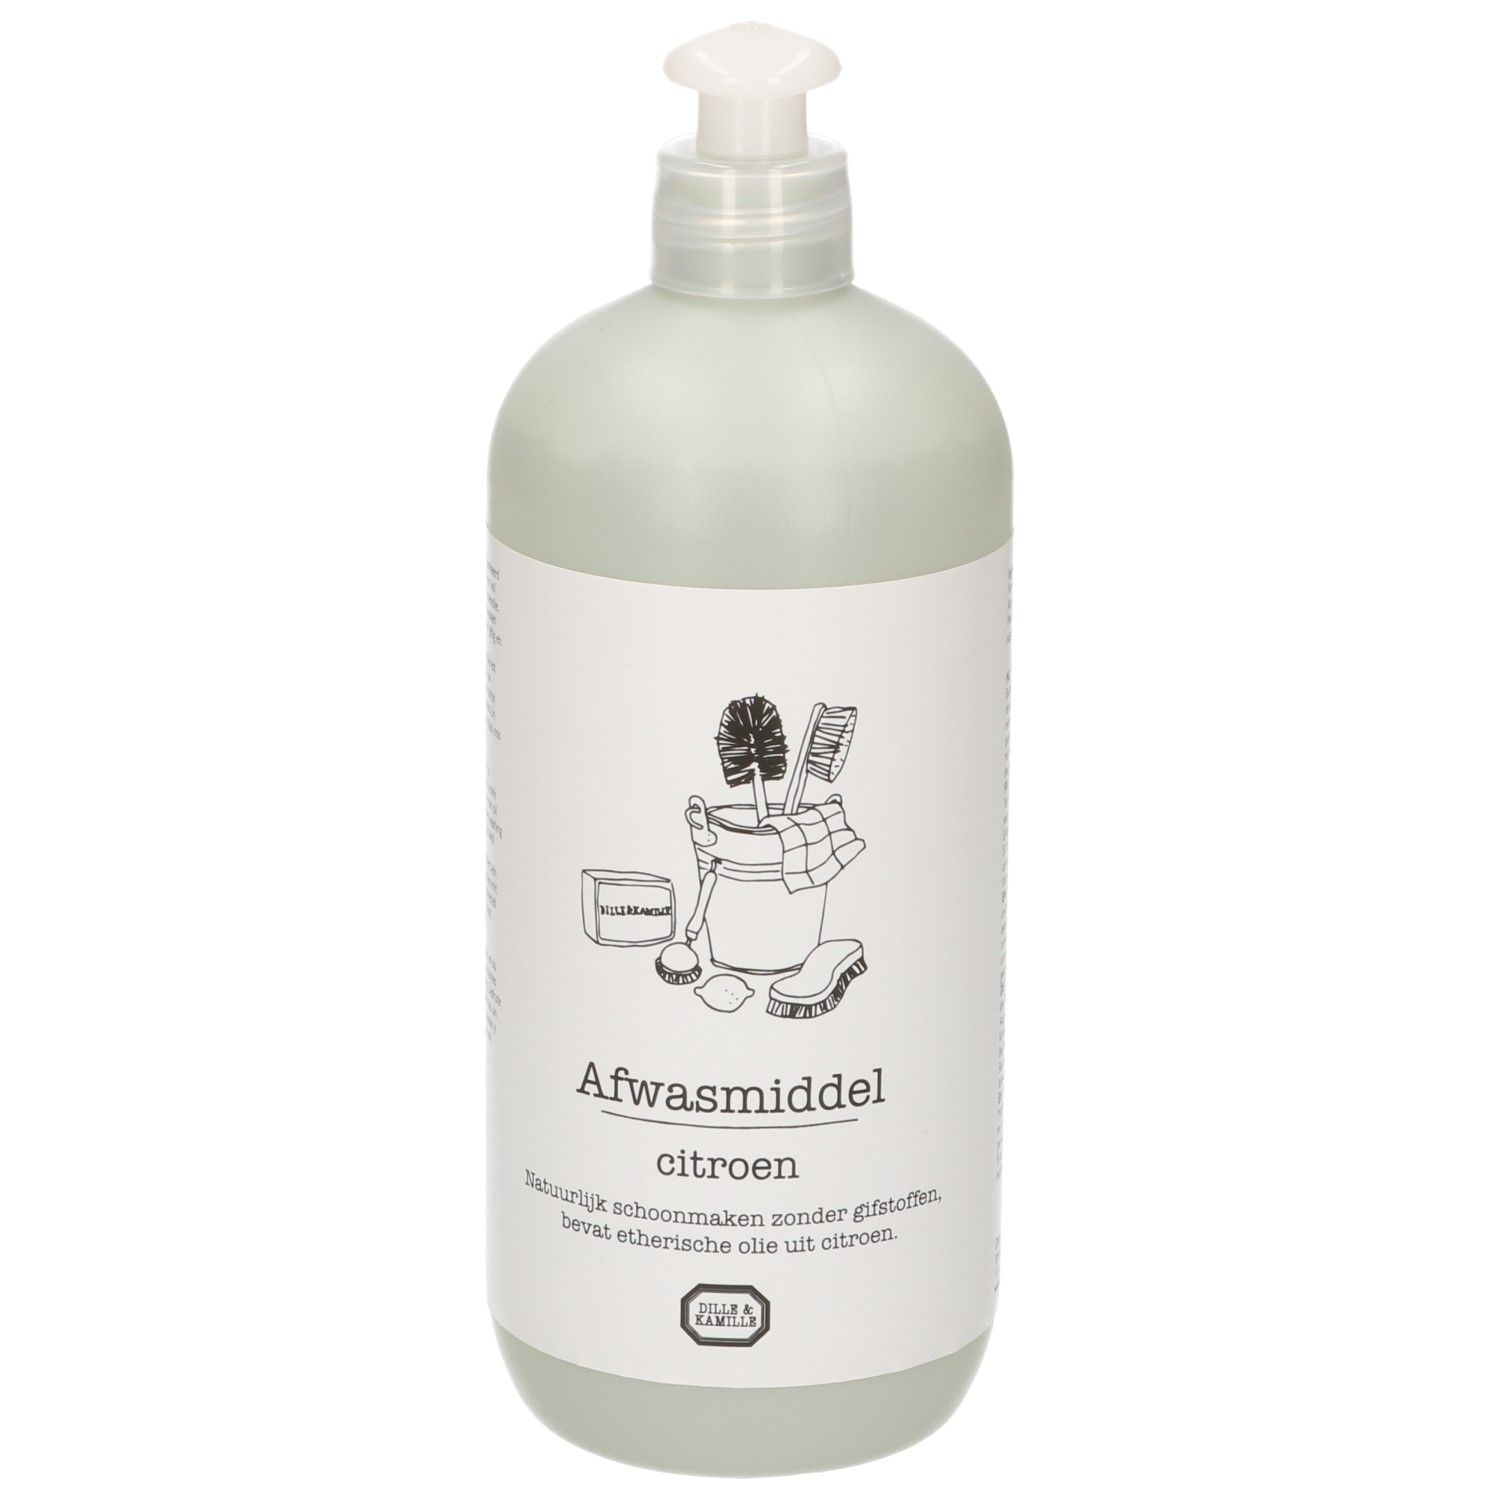 Afwasmiddel, citroen, 500 ml